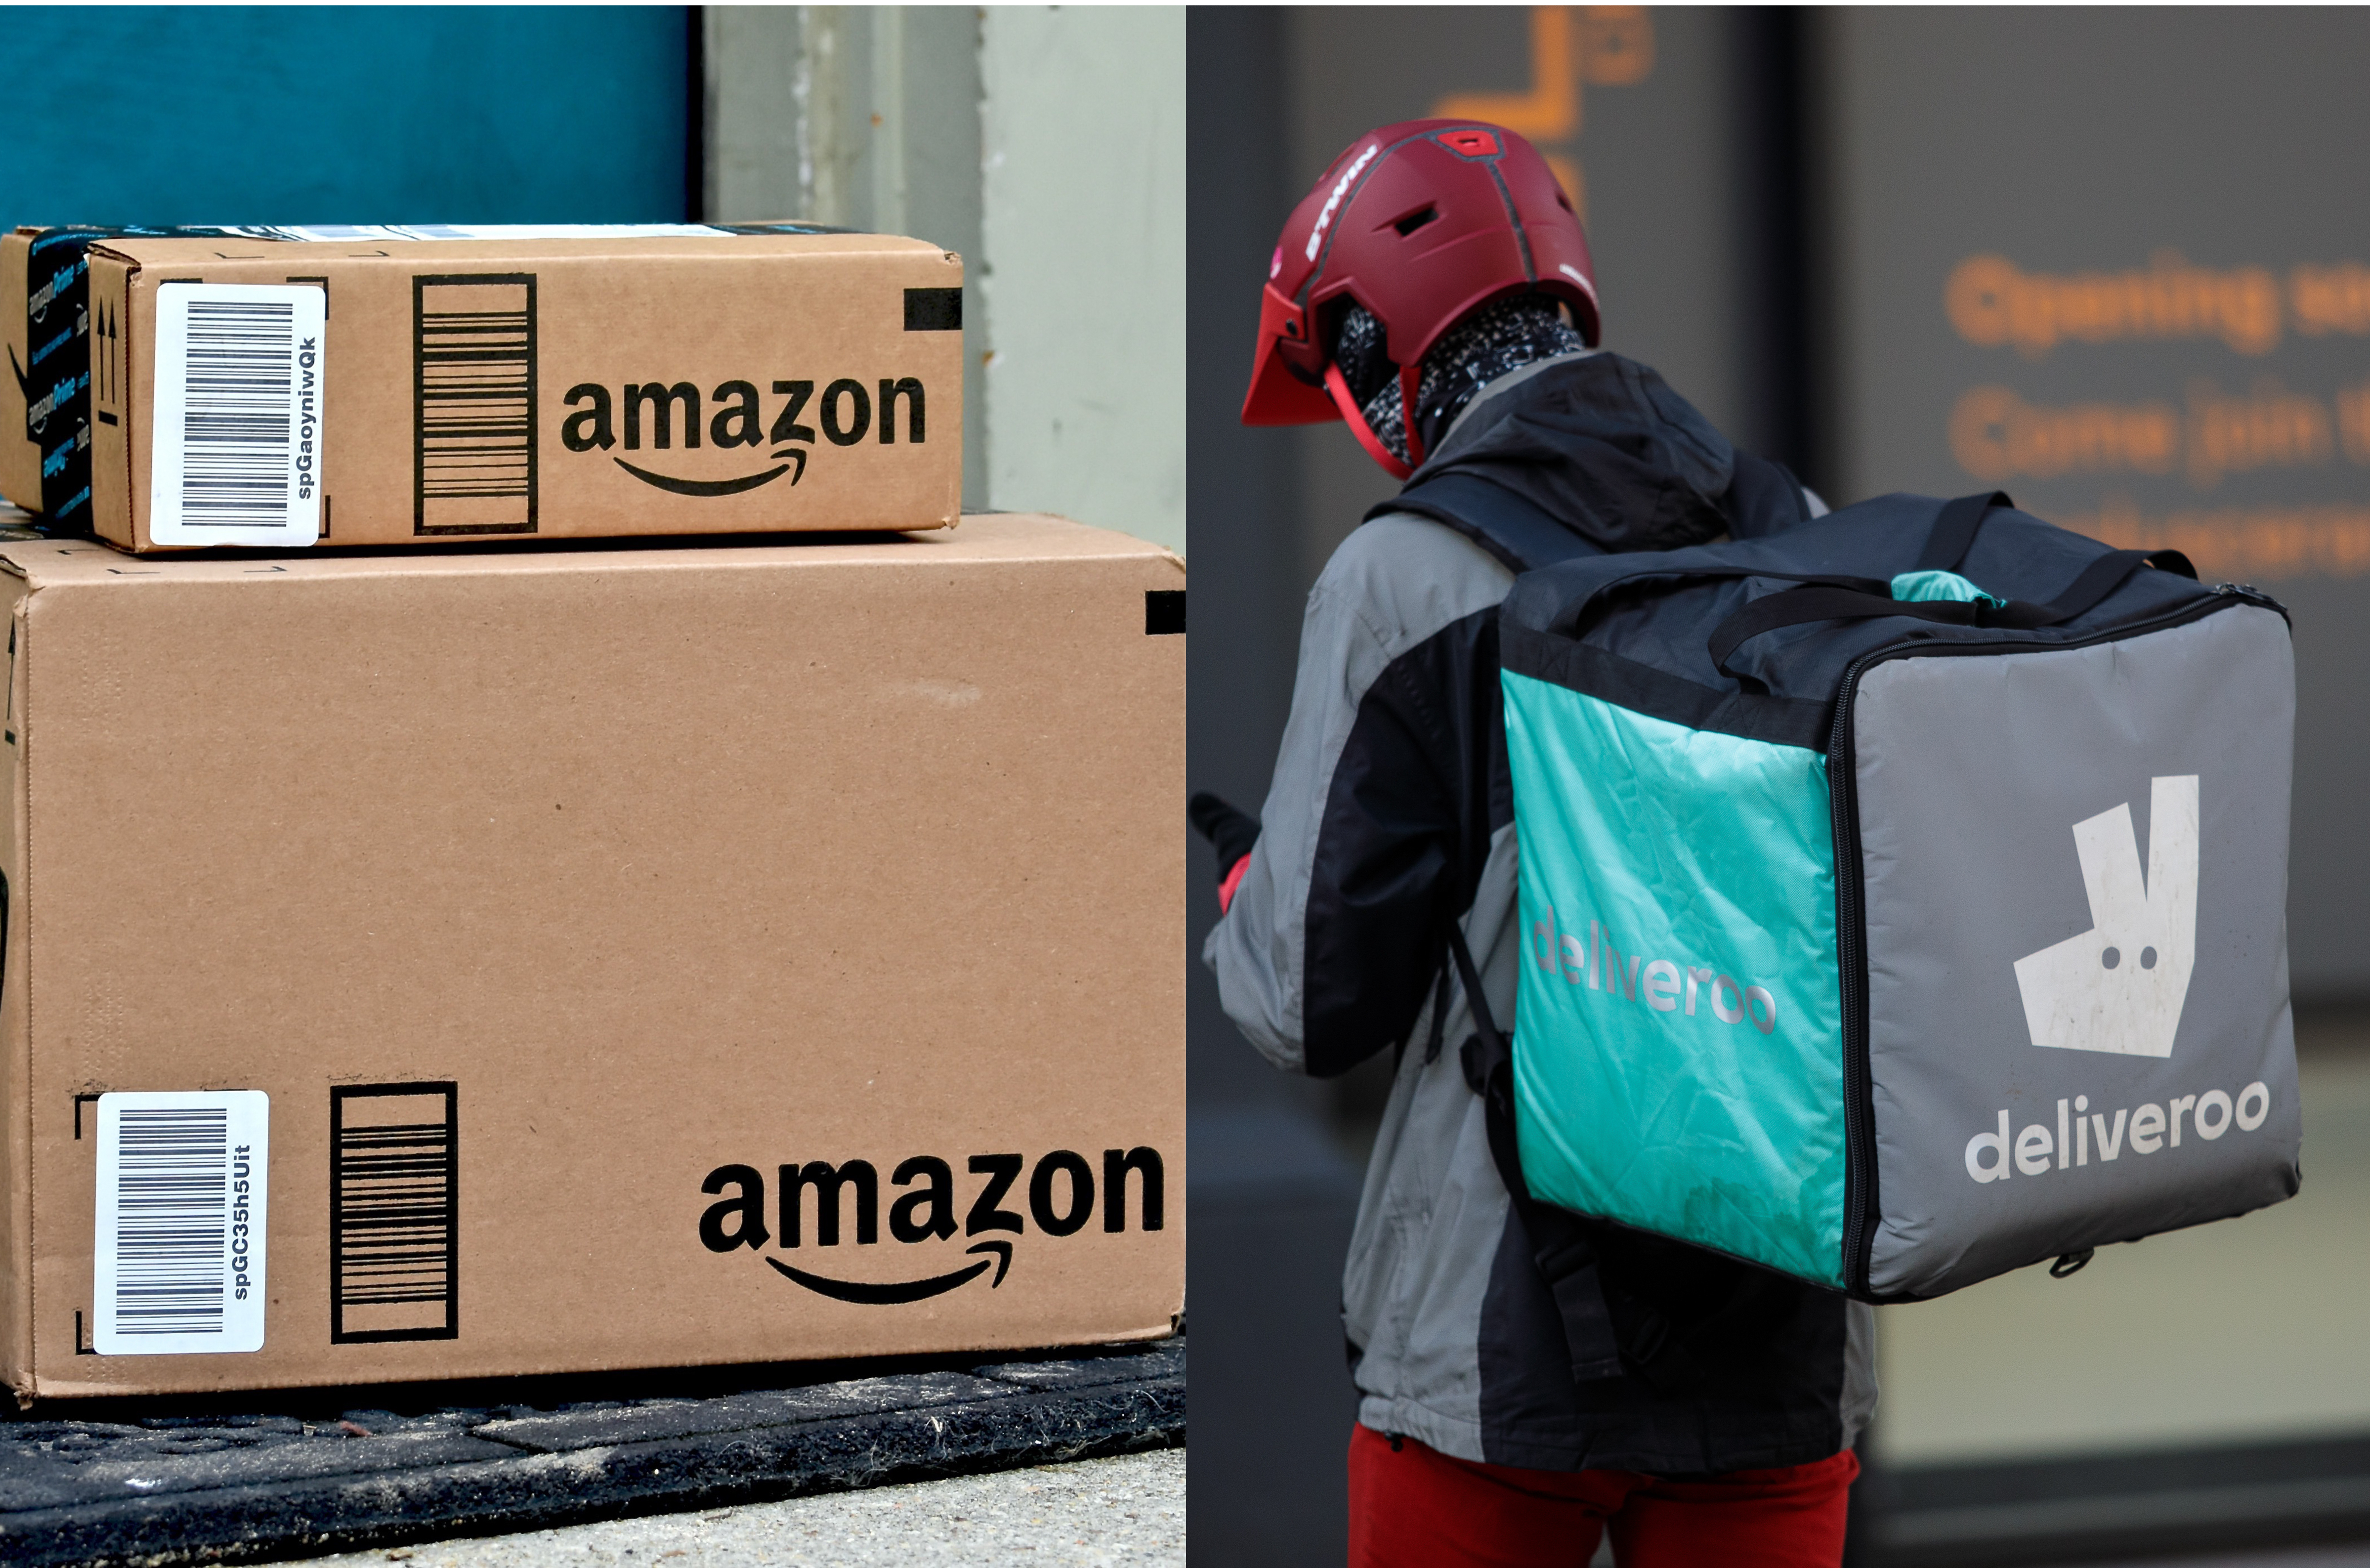 Amazon Invested Millions in Takeaway Pedallers Deliveroo but Regulators Worry It's Shady